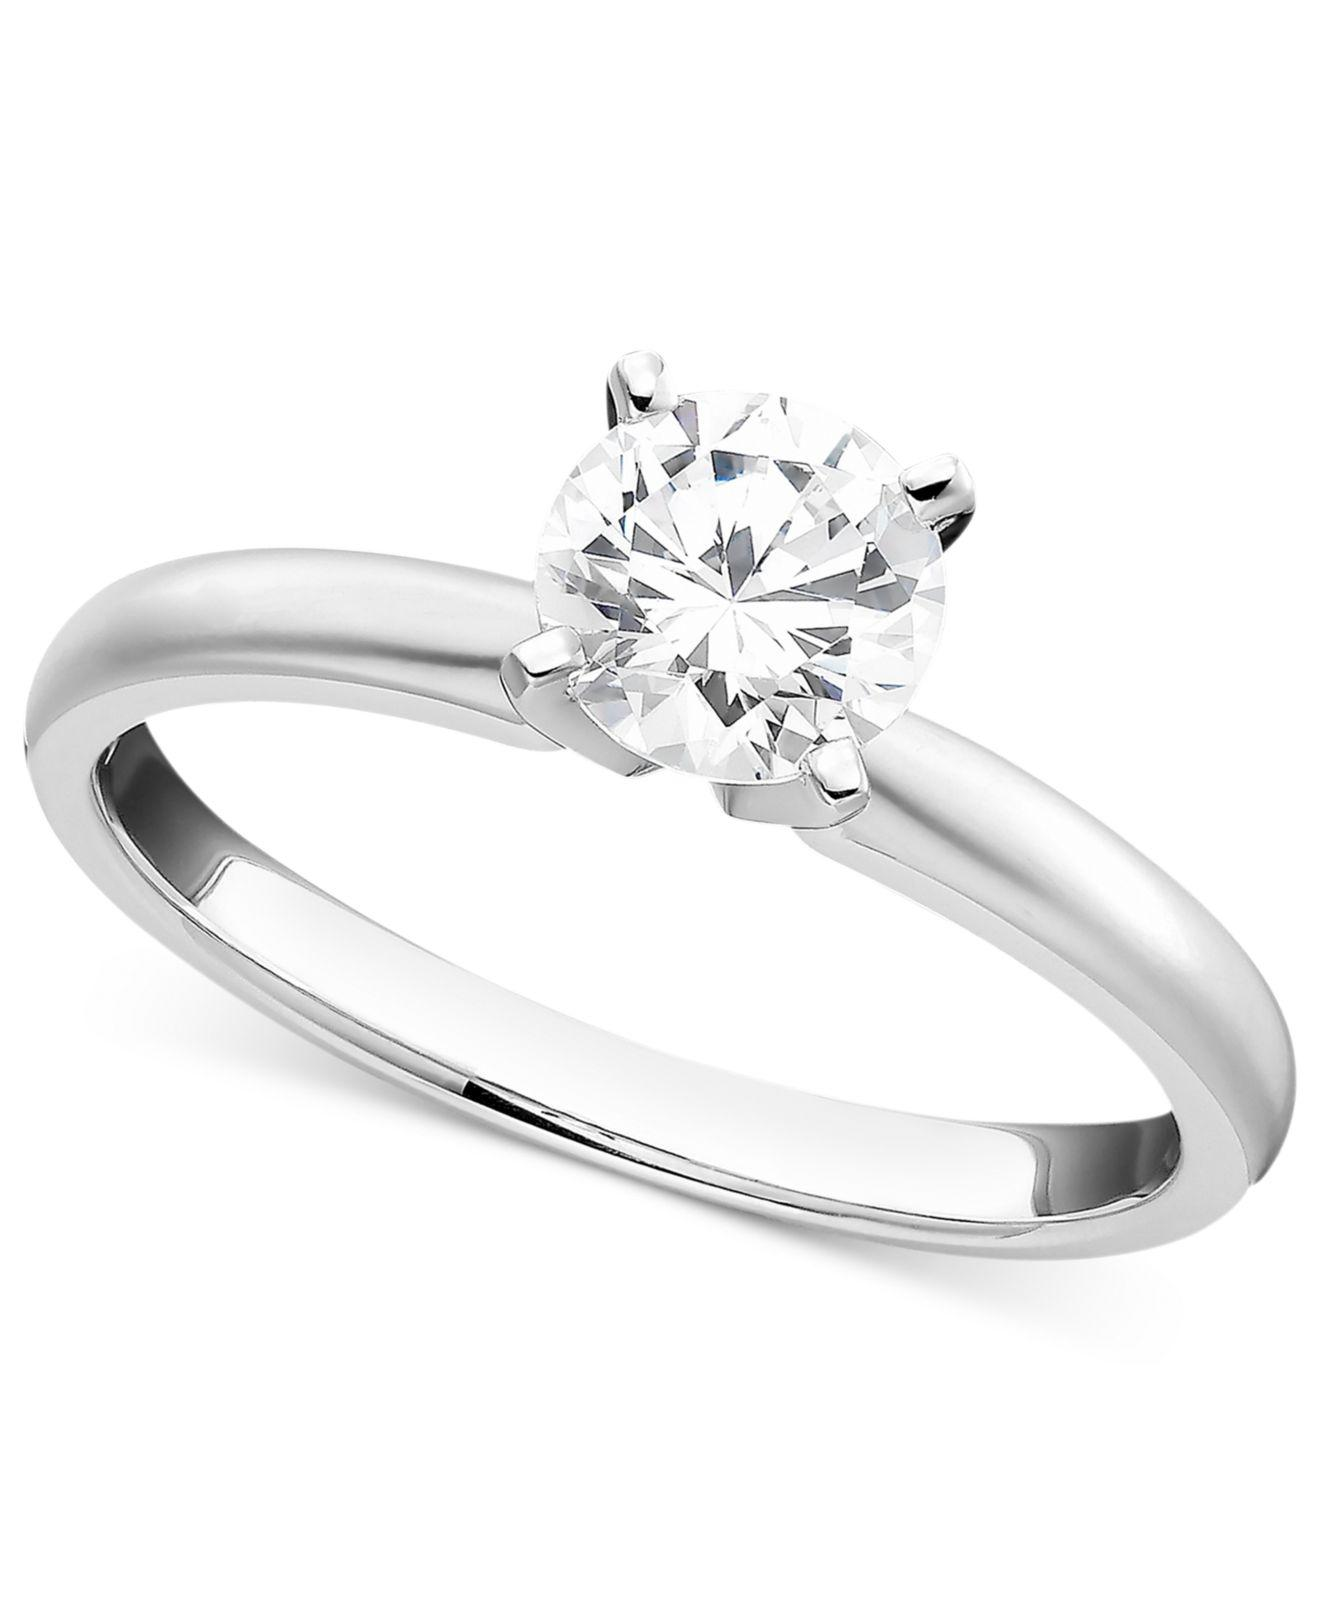 colorless with knife edge diamond petite center engagement product solitaire princess ring cut shown rings carat a